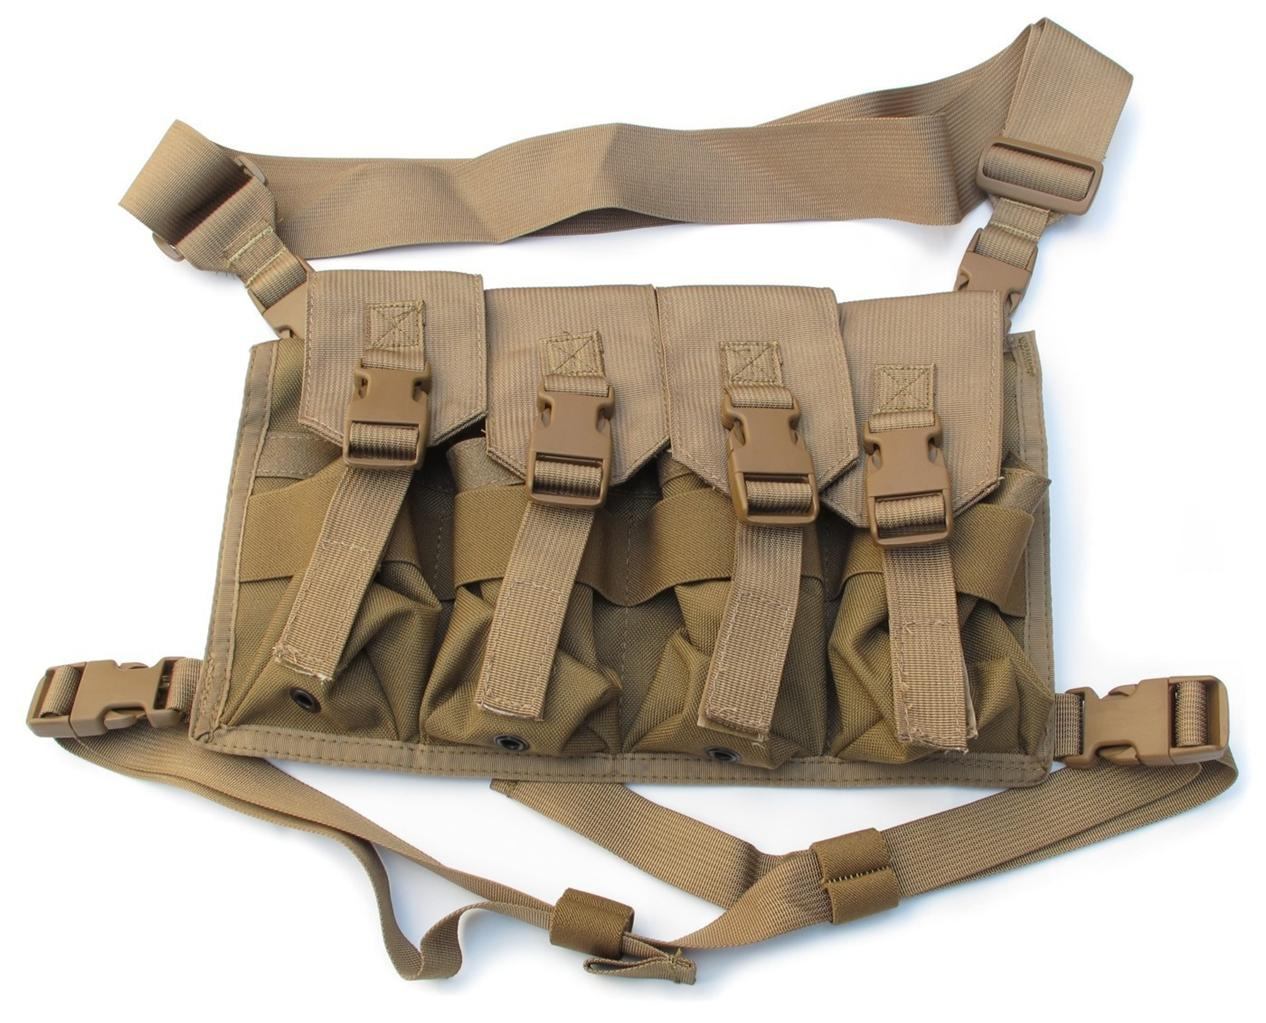 Tactical-Shooters-8x-30rd-Magazine-Bag-Chest-Rig-Tan-1000D-Cordura-Nylon-USA